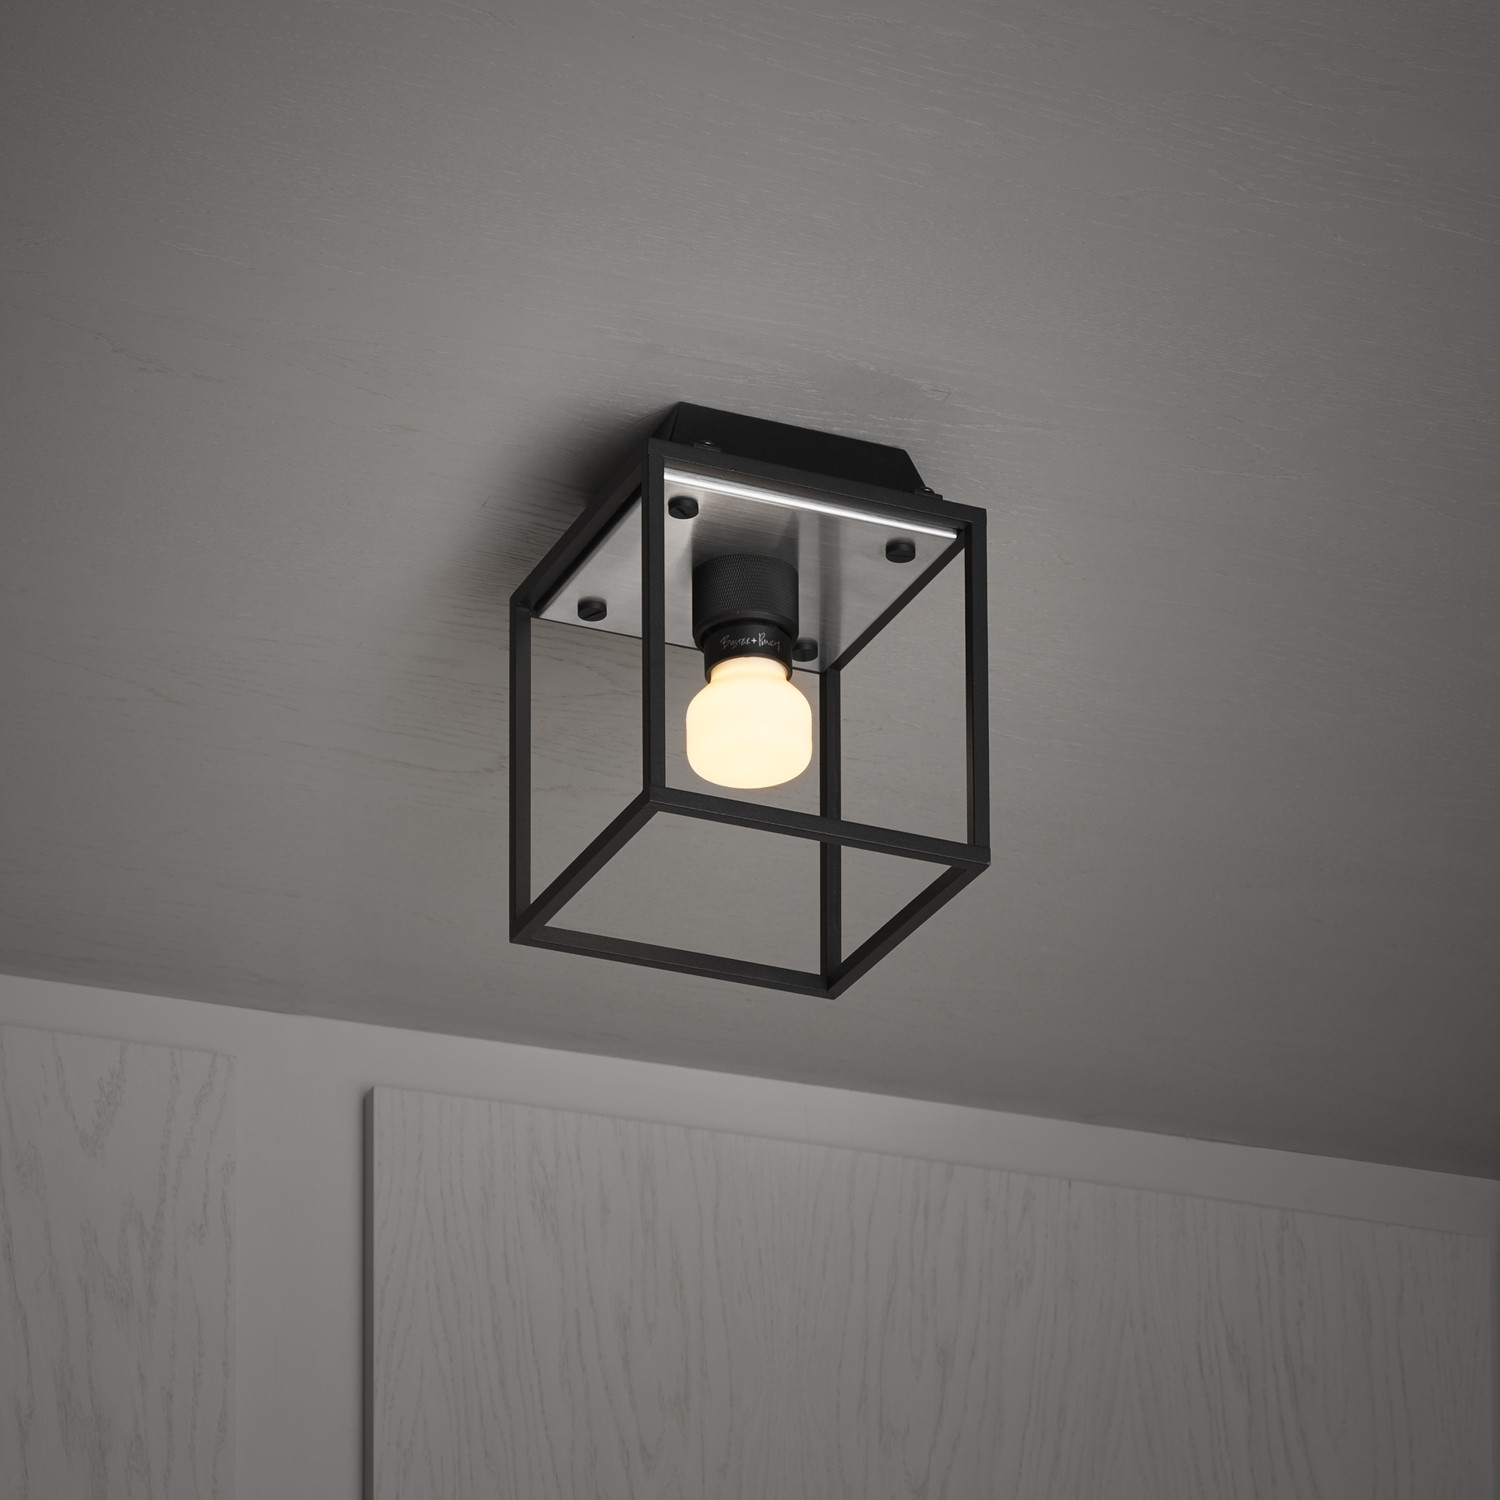 Caged 1.0. Small Ceiling Lamp